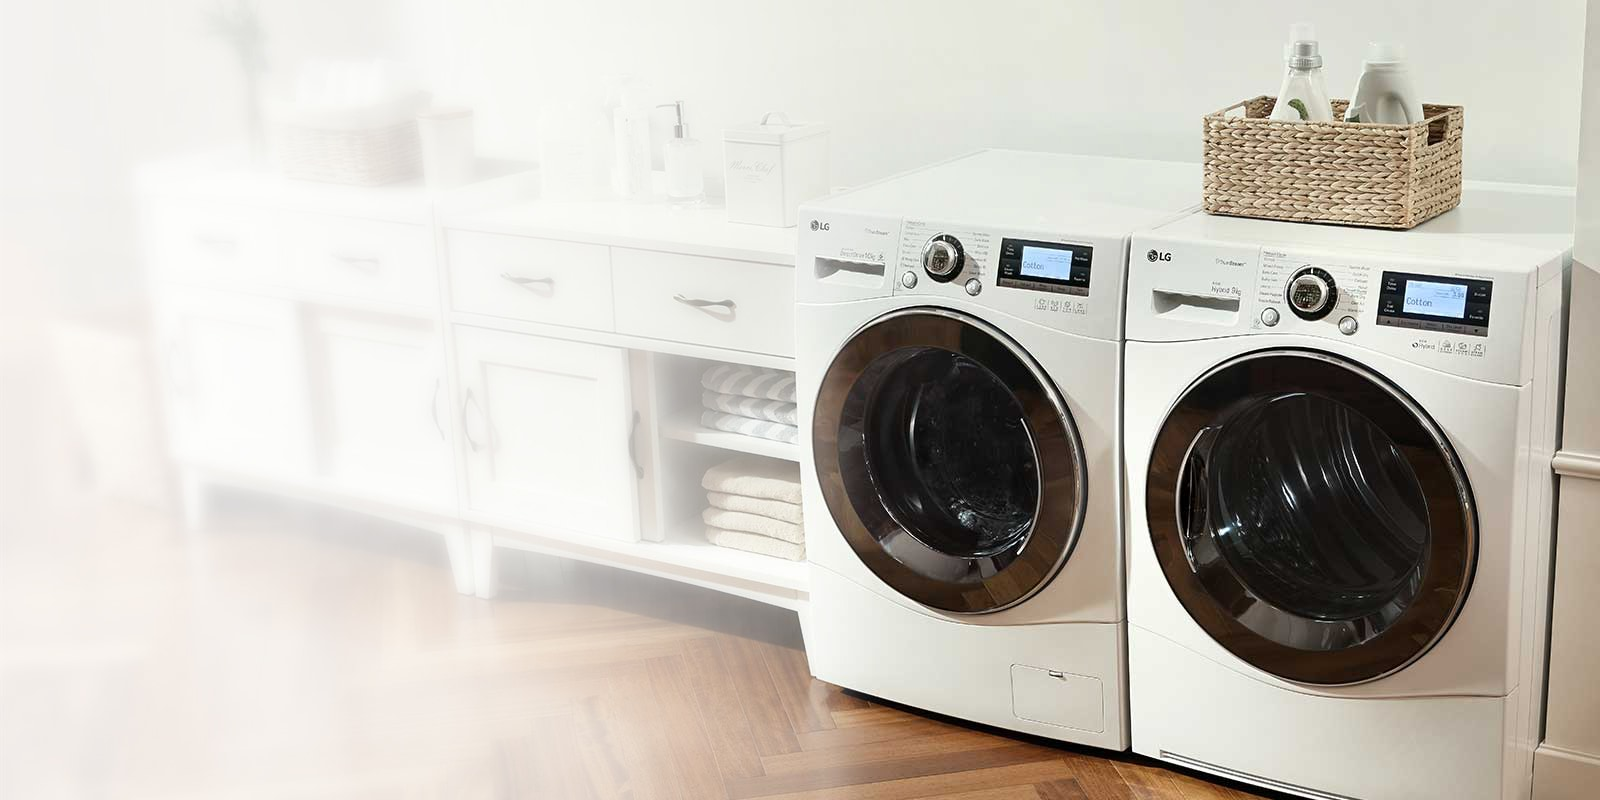 Lg Dryer Repair >> LG Clothes Dryers: Discover Reliable Dryer Machines | LG New Zealand